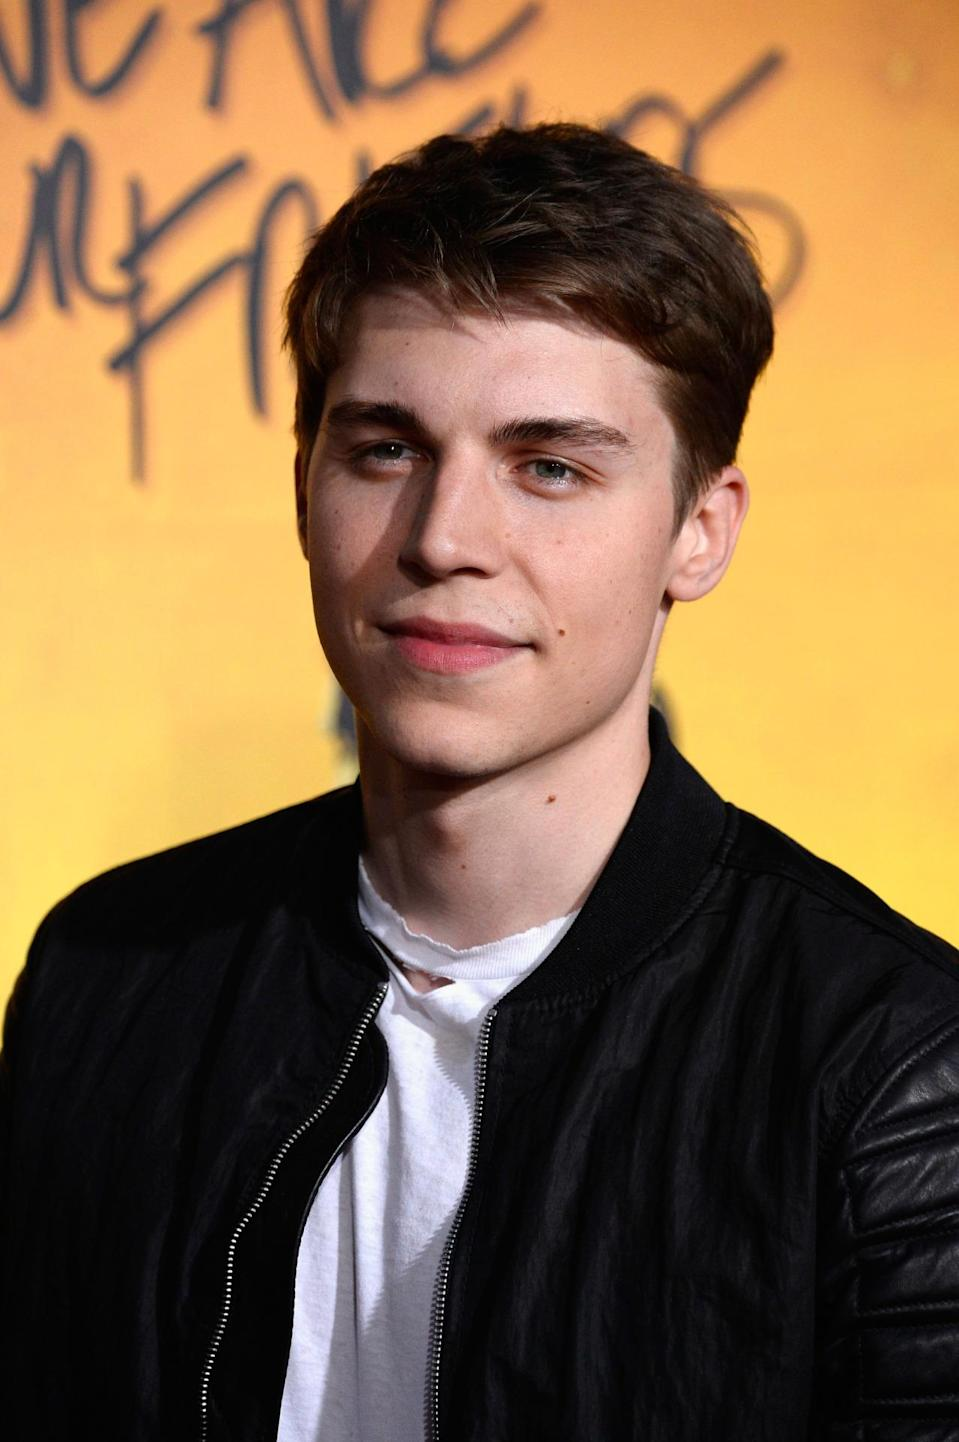 """HOLLYWOOD, CA - AUGUST 20:Actor Nolan Gerard Funk arrives at the Premiere Of Warner Bros. Pictures' """"We Are Your Friends"""" at TCL Chinese Theatre on August 20, 2015 in Hollywood, California. (Photo by Frazer Harrison/Getty Images)"""